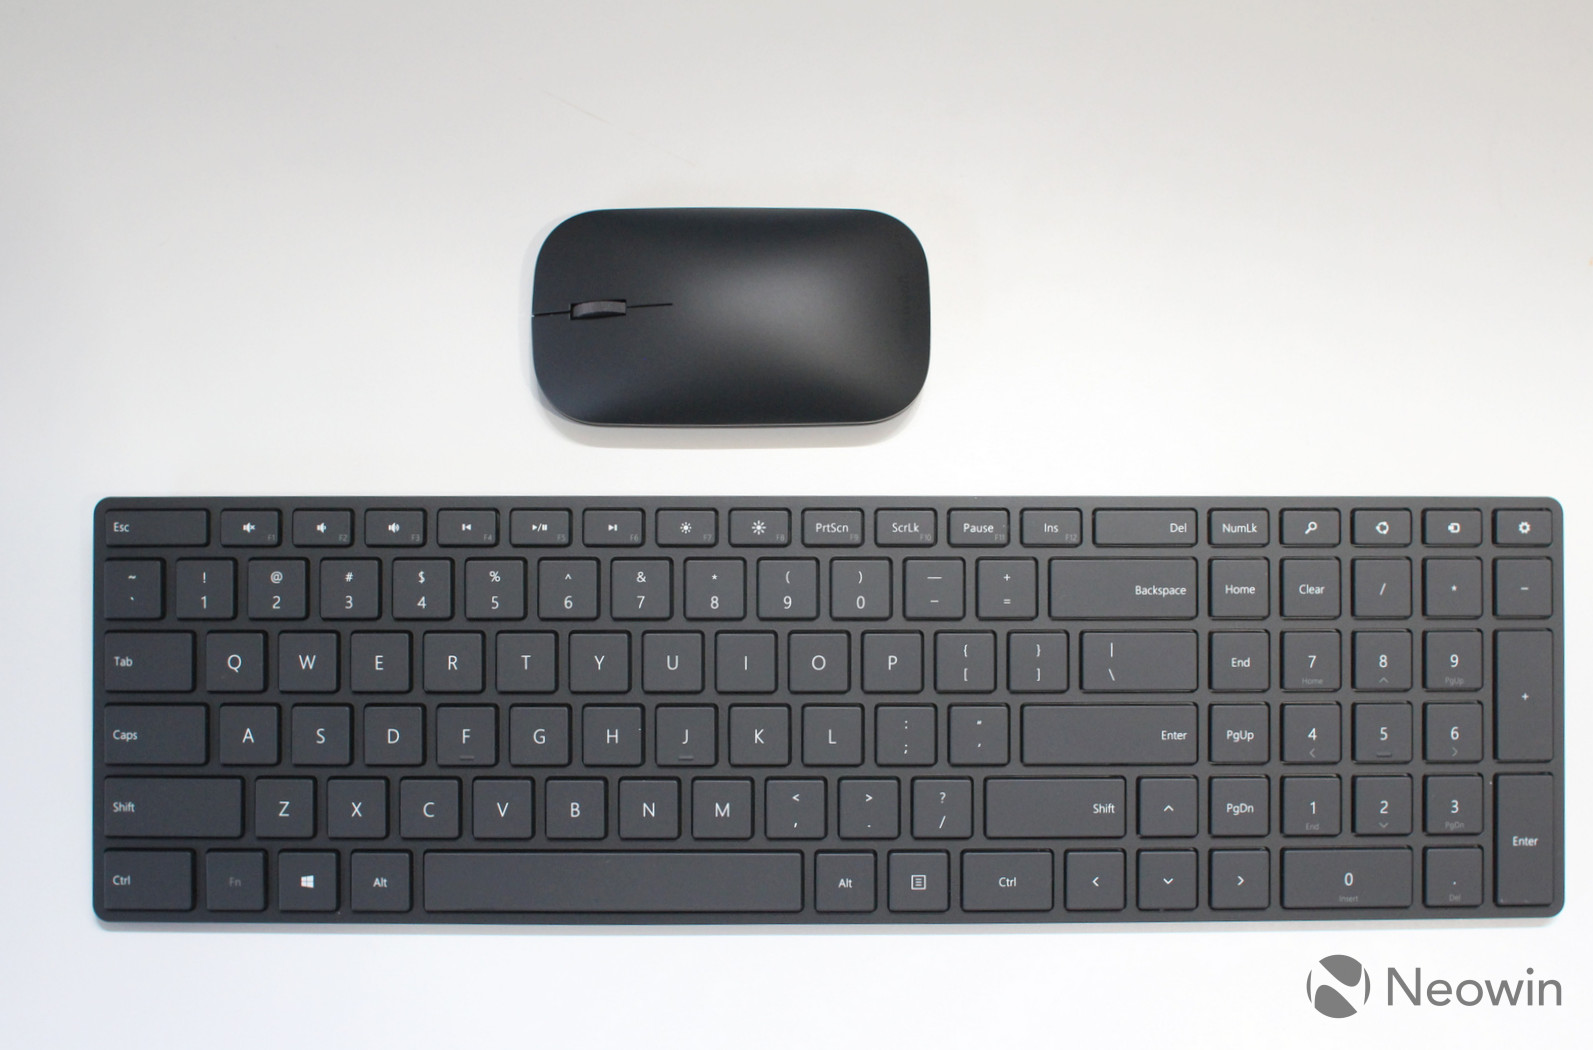 2da0e76f097 Gallery: Designer Bluetooth Keyboard and Mouse.  screen_shot_2015-05-08_at_1.55.44_pm.jpg ...